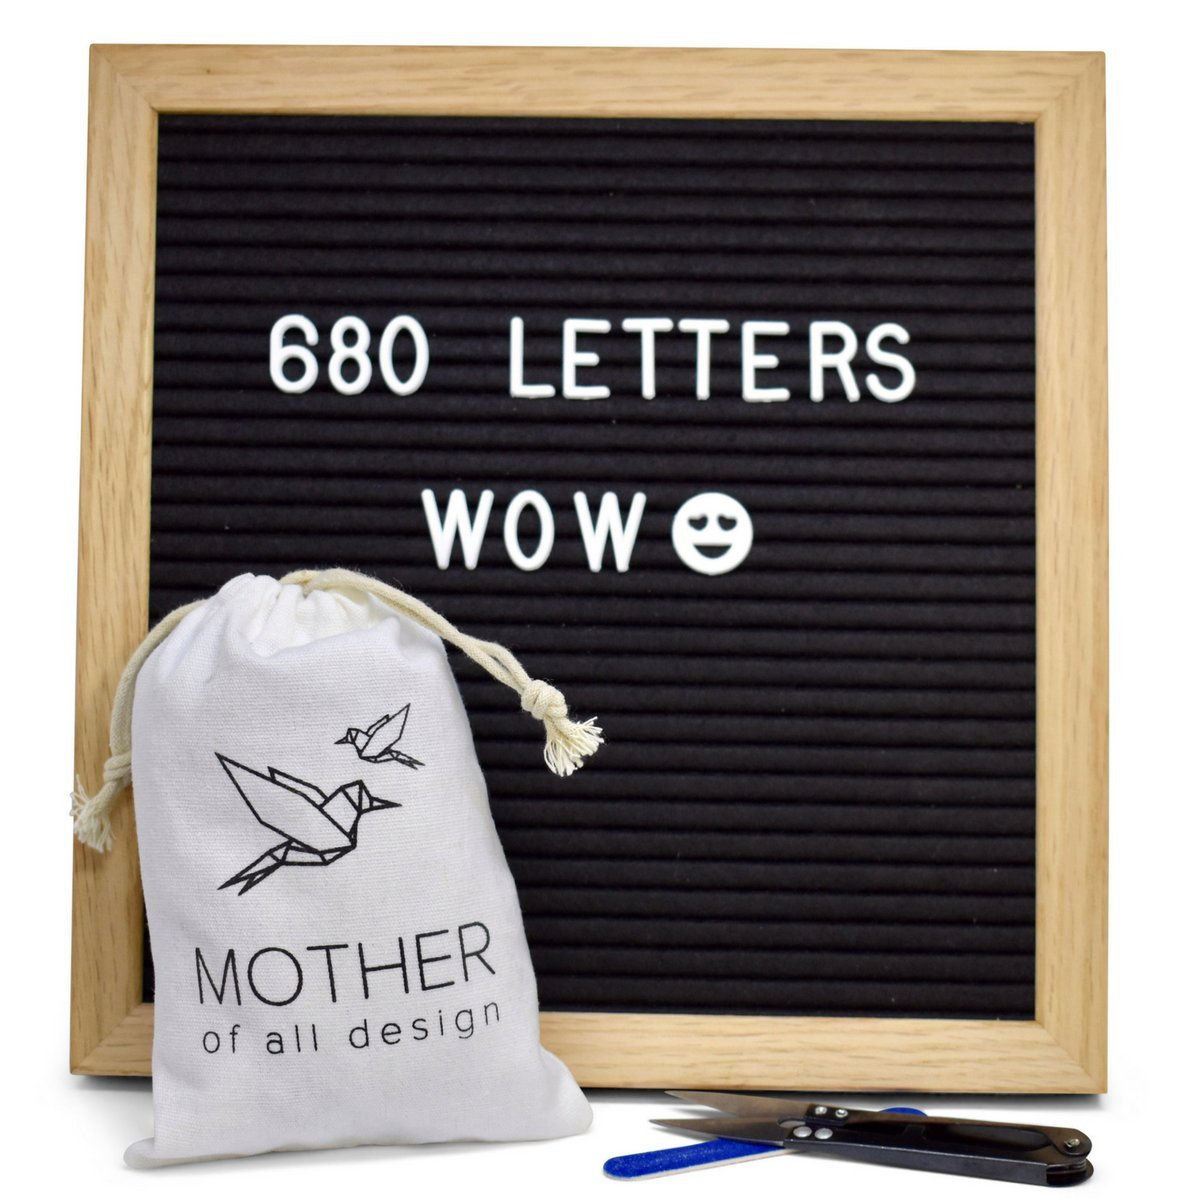 Changeable Black Felt Letter Message Board with a Massive 680 Letters Numbers Symbols & Emoji's - 10x10 inches - Perfect for The Classroom, Home, Office or Business